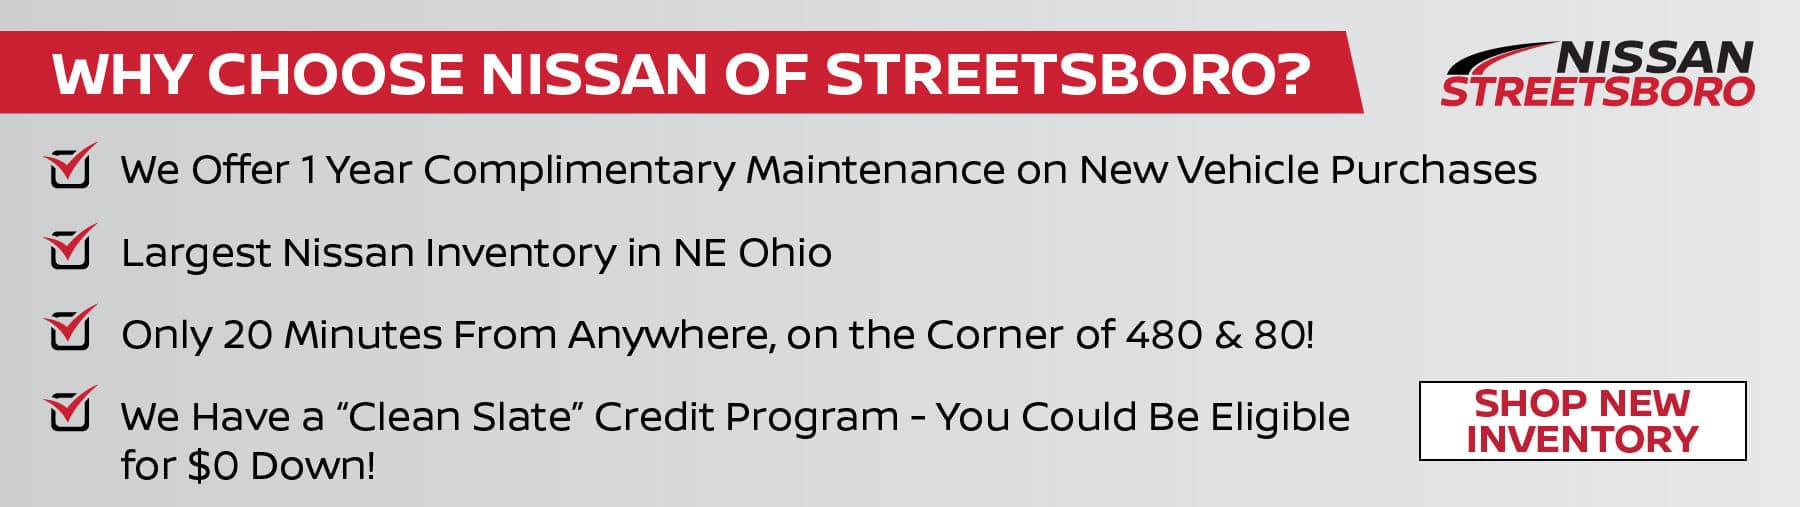 Why Choose Nissan of Streetsboro